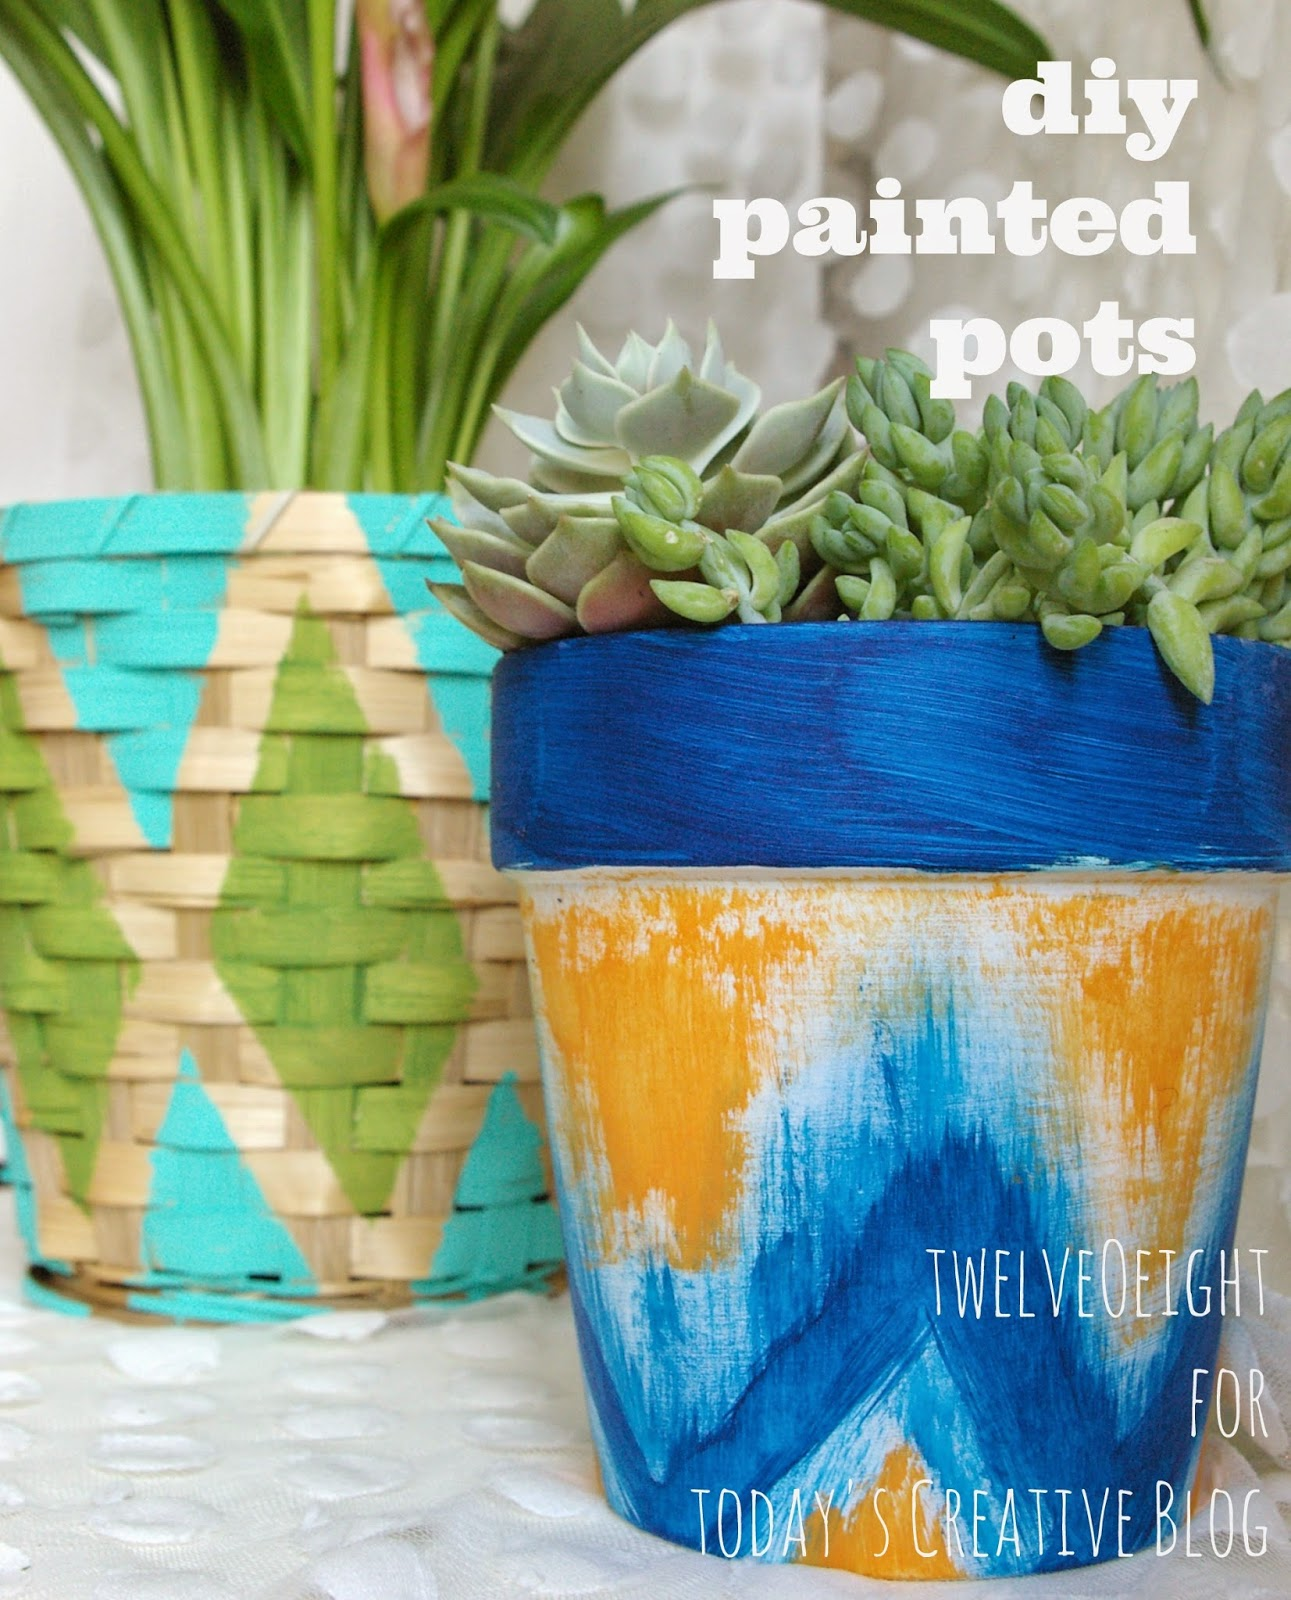 Painted Pots and Baskets by TwelveOeight for TodaysCreativeBlog.net